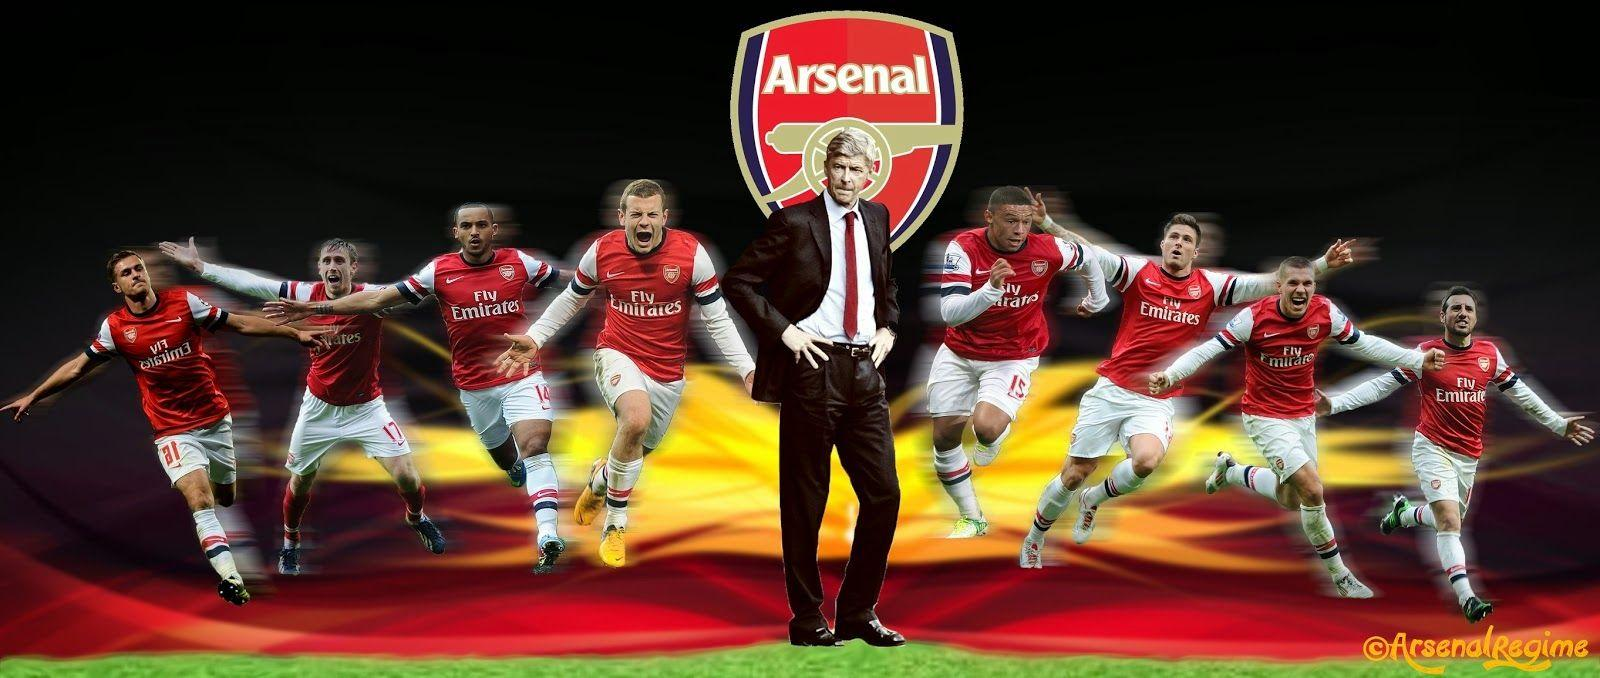 Download Arsenal Wallpapers in HD For Desktop or Gadget - Free ...